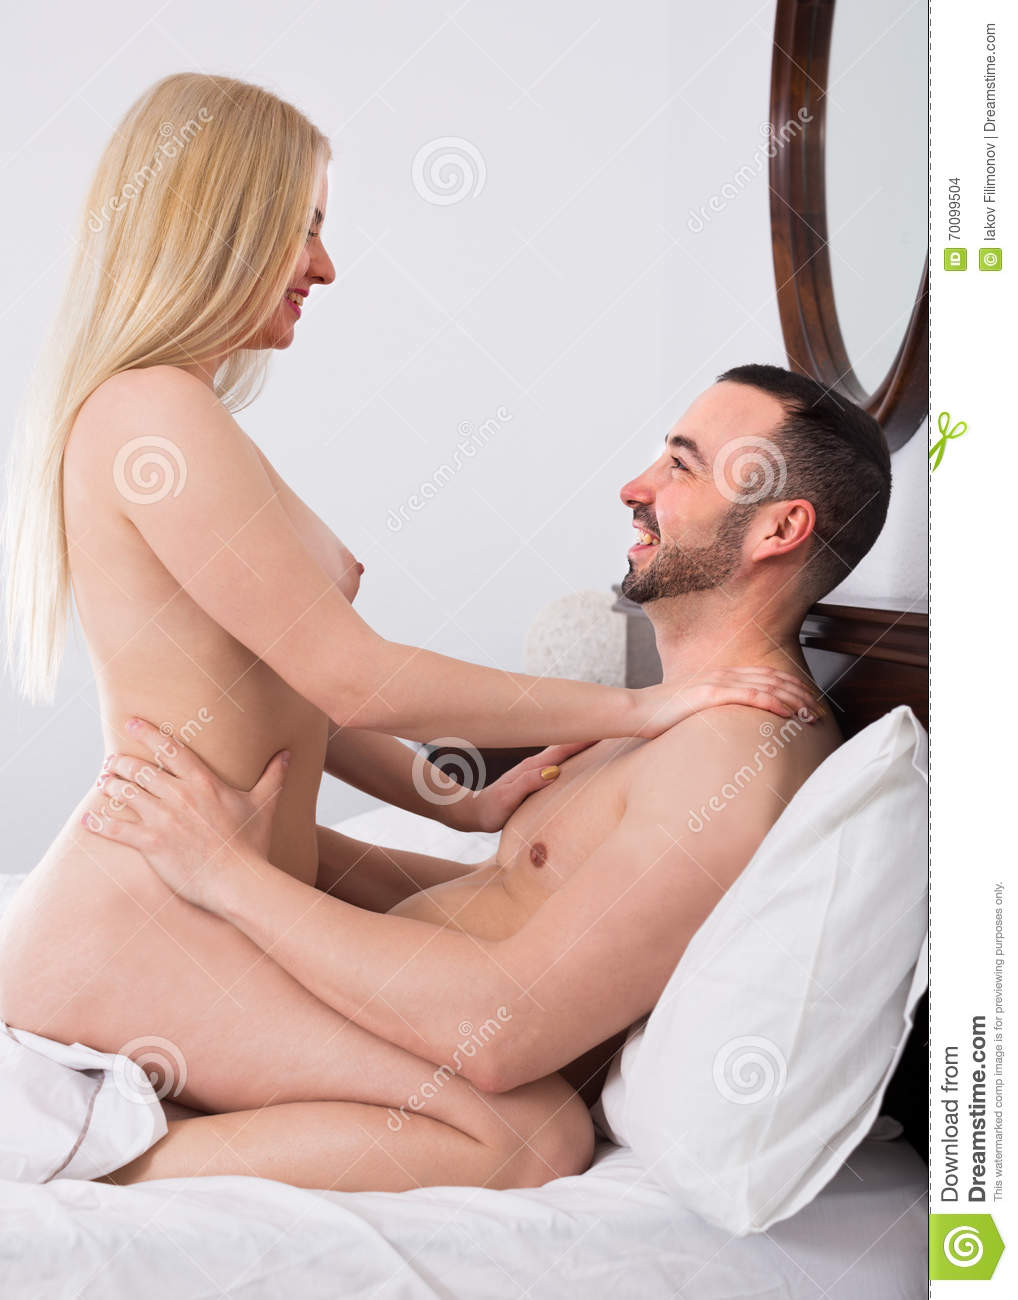 Sexy naked couples having sex naked porn sex opinion you